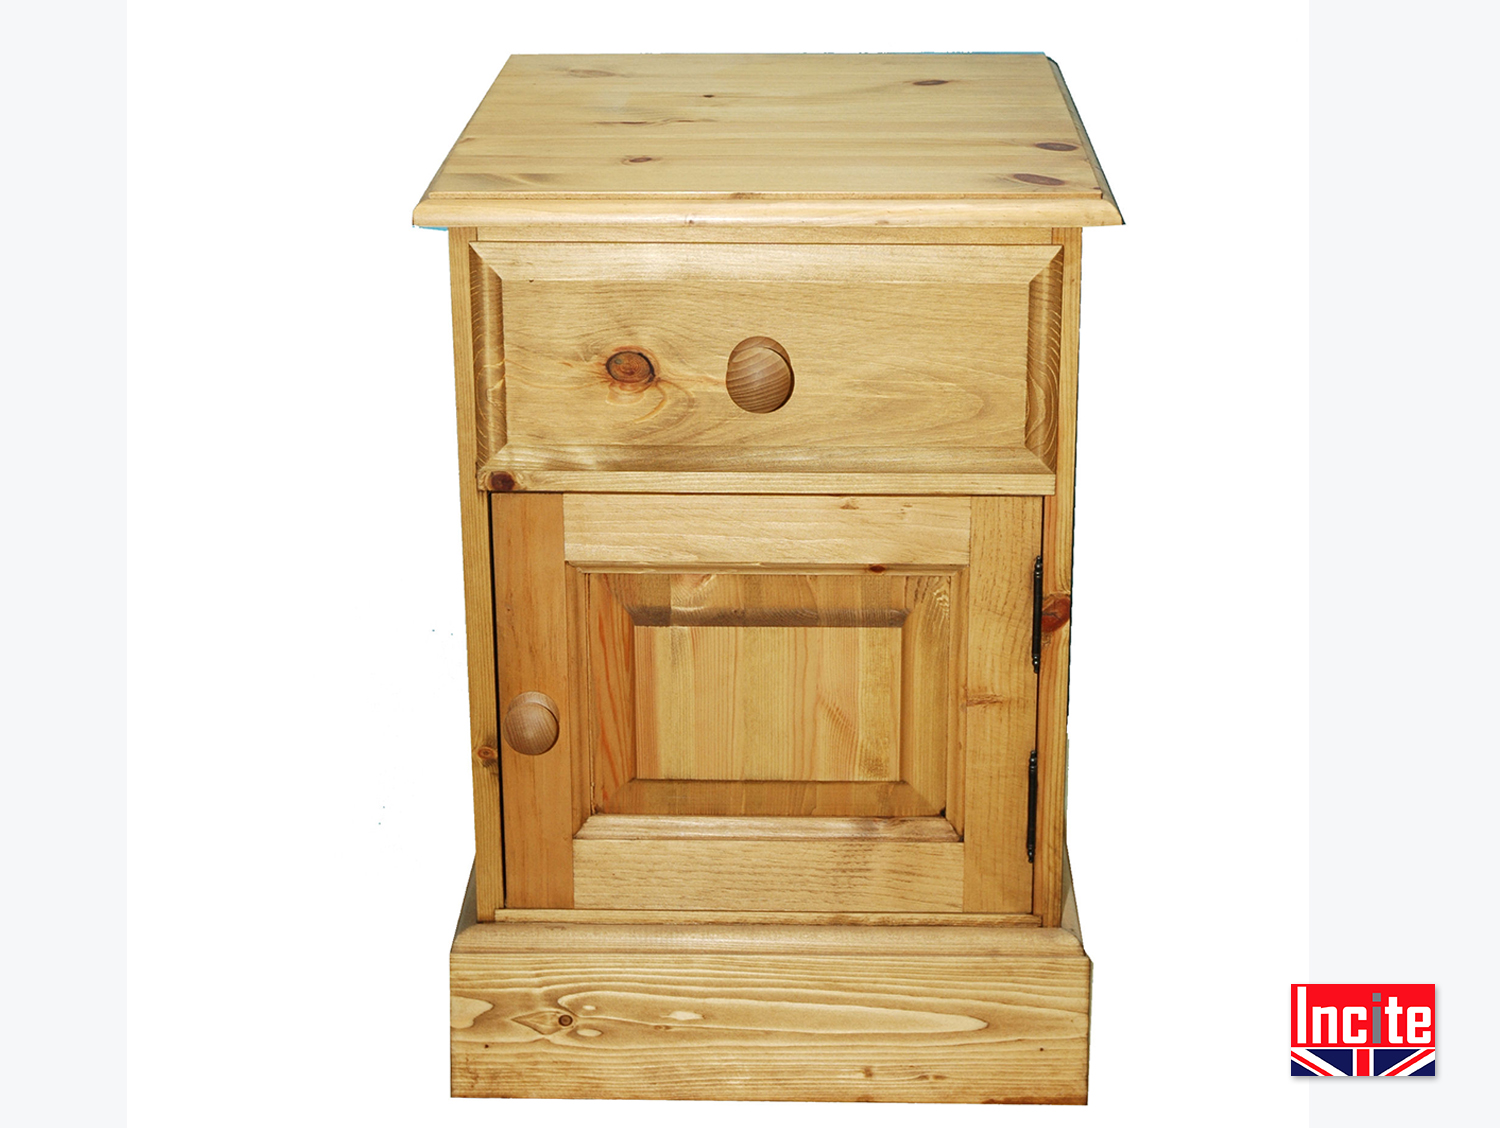 Handmade Solid Pine Pot Cupboard Bedside by Incite Derby